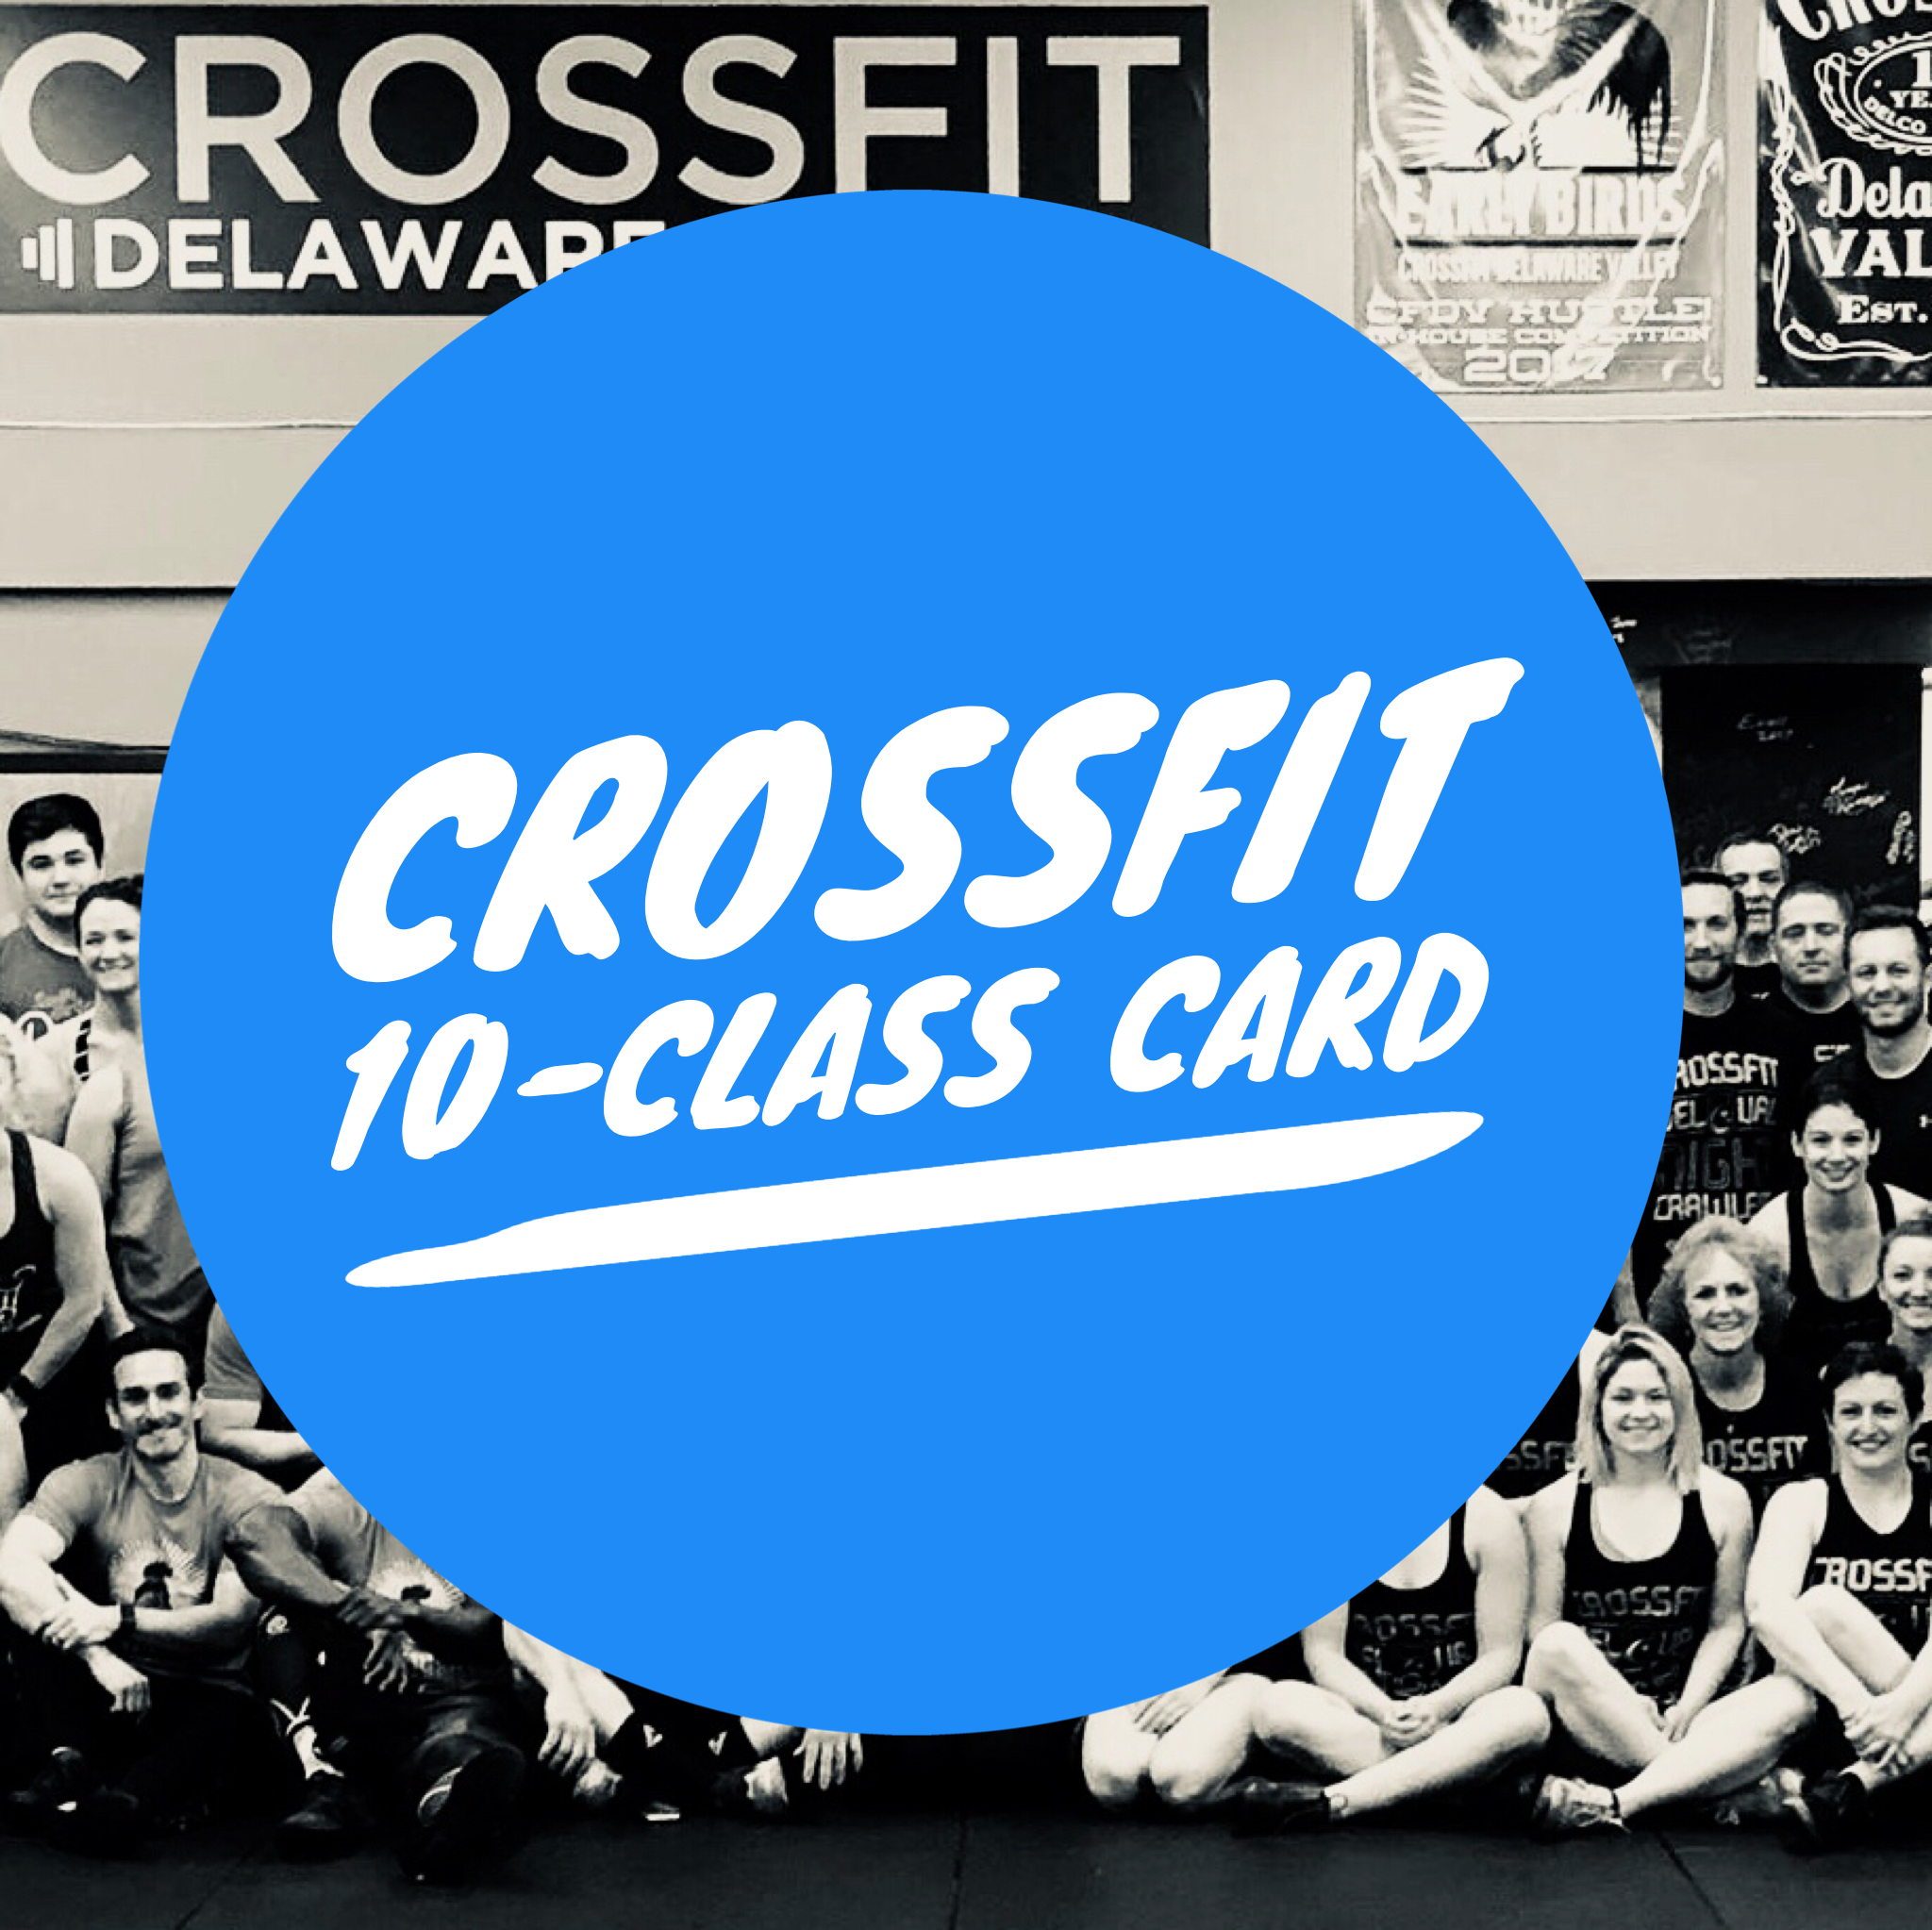 $175 - Ten class punchcard (CrossFit, Bootcamp or Barbell Club)Wodify workout tracking